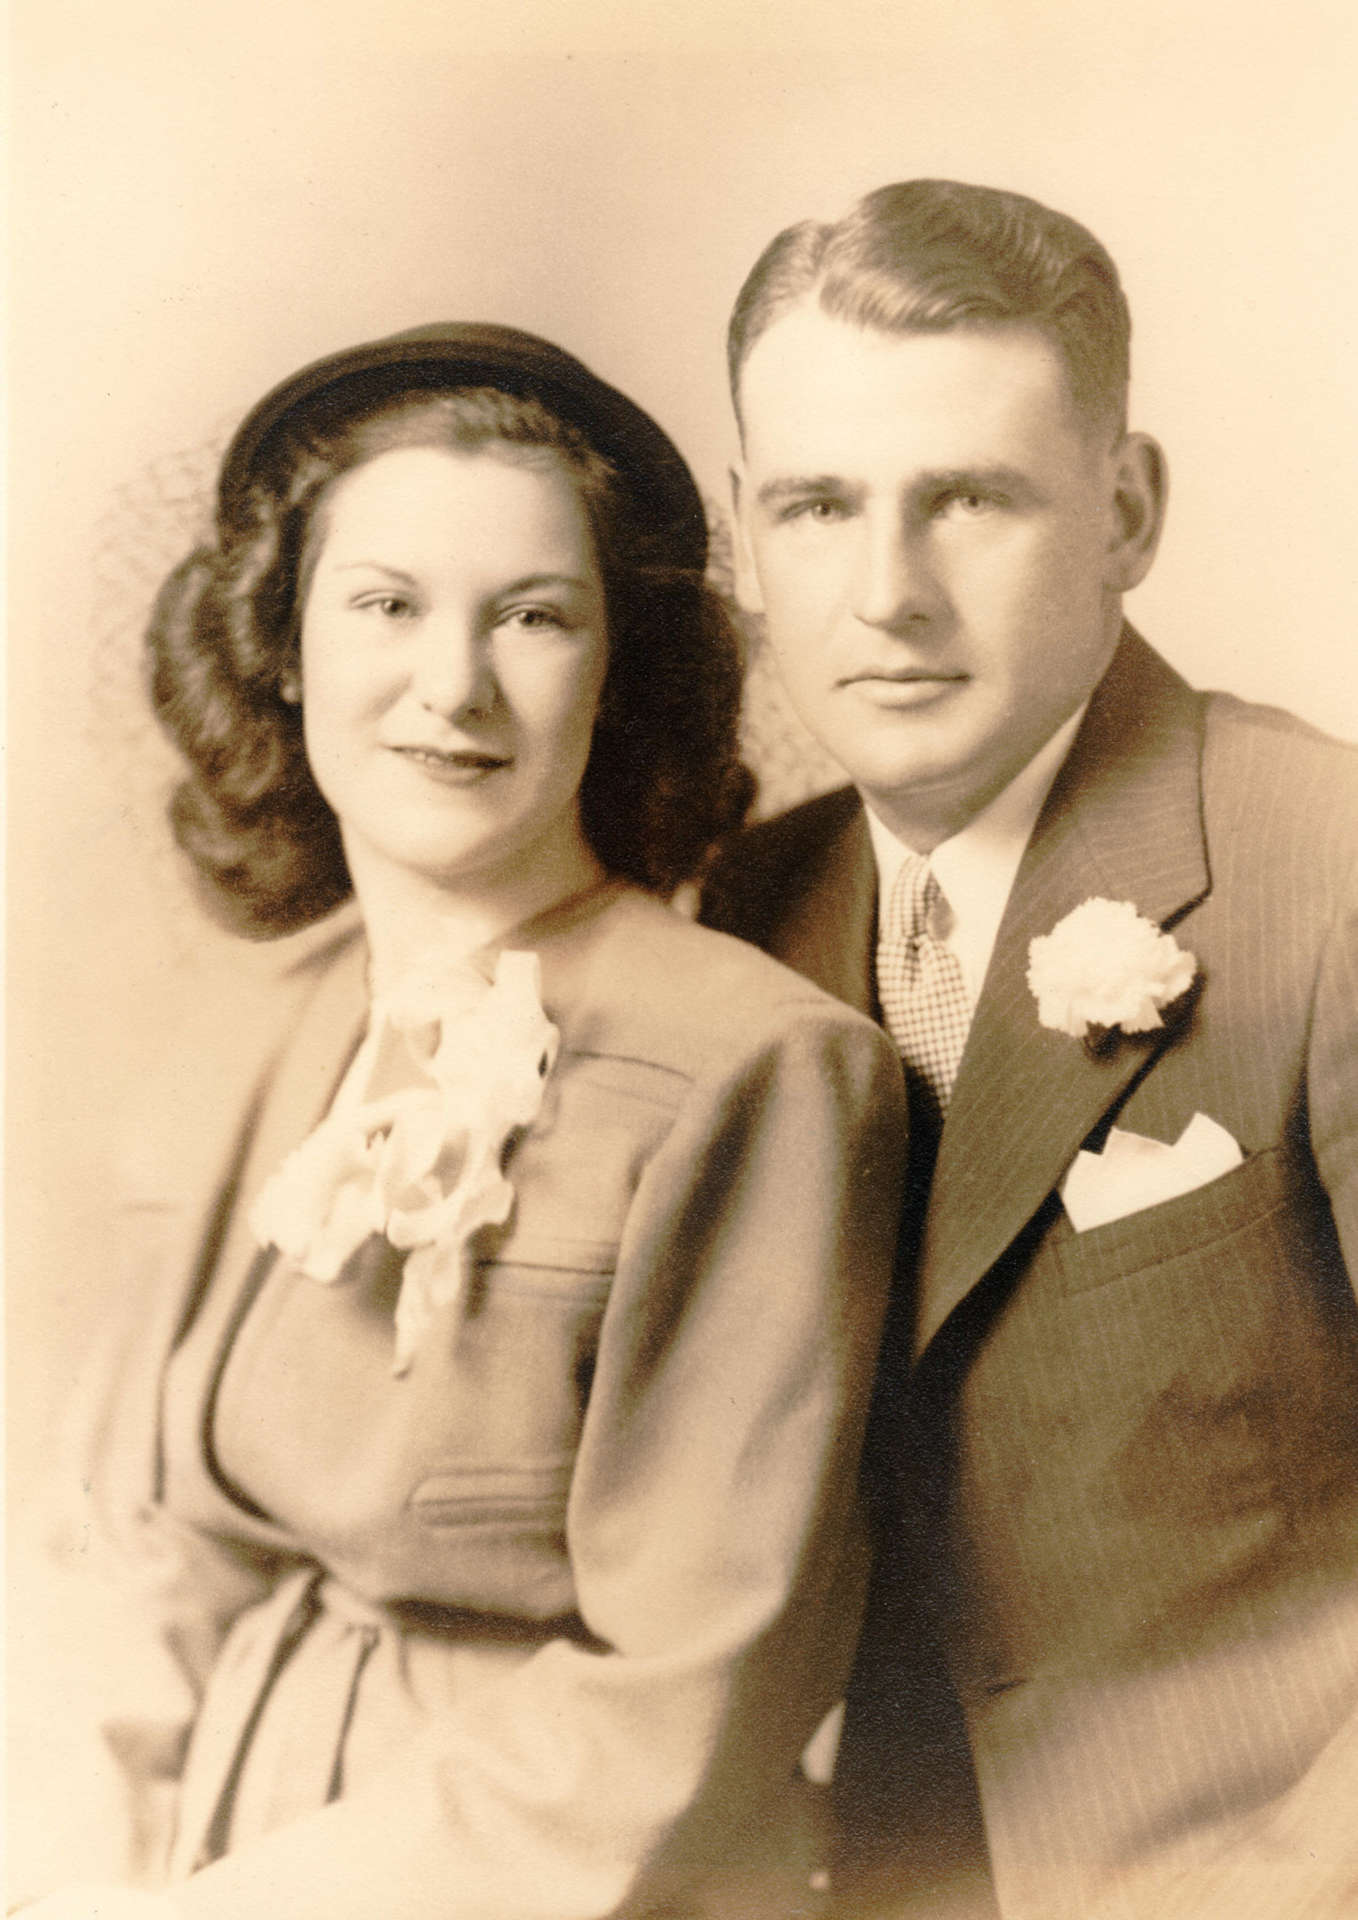 June Oland Best and Preston Best, Sr. on their wedding day in February 1946.